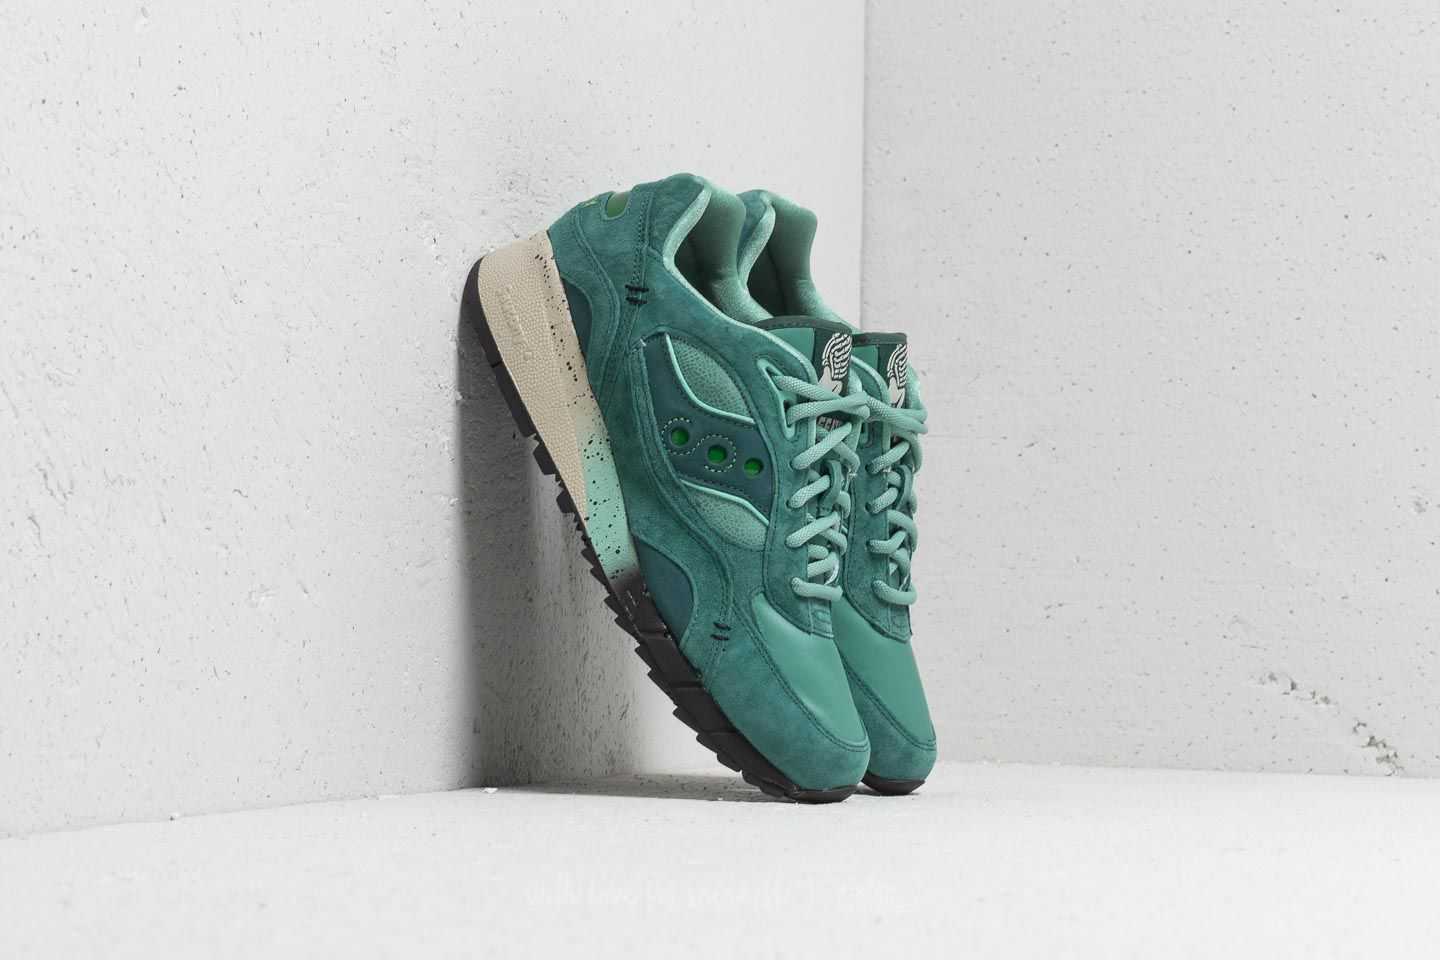 """Saucony x Feature Shadow 6000 """"Living Fossil"""""""